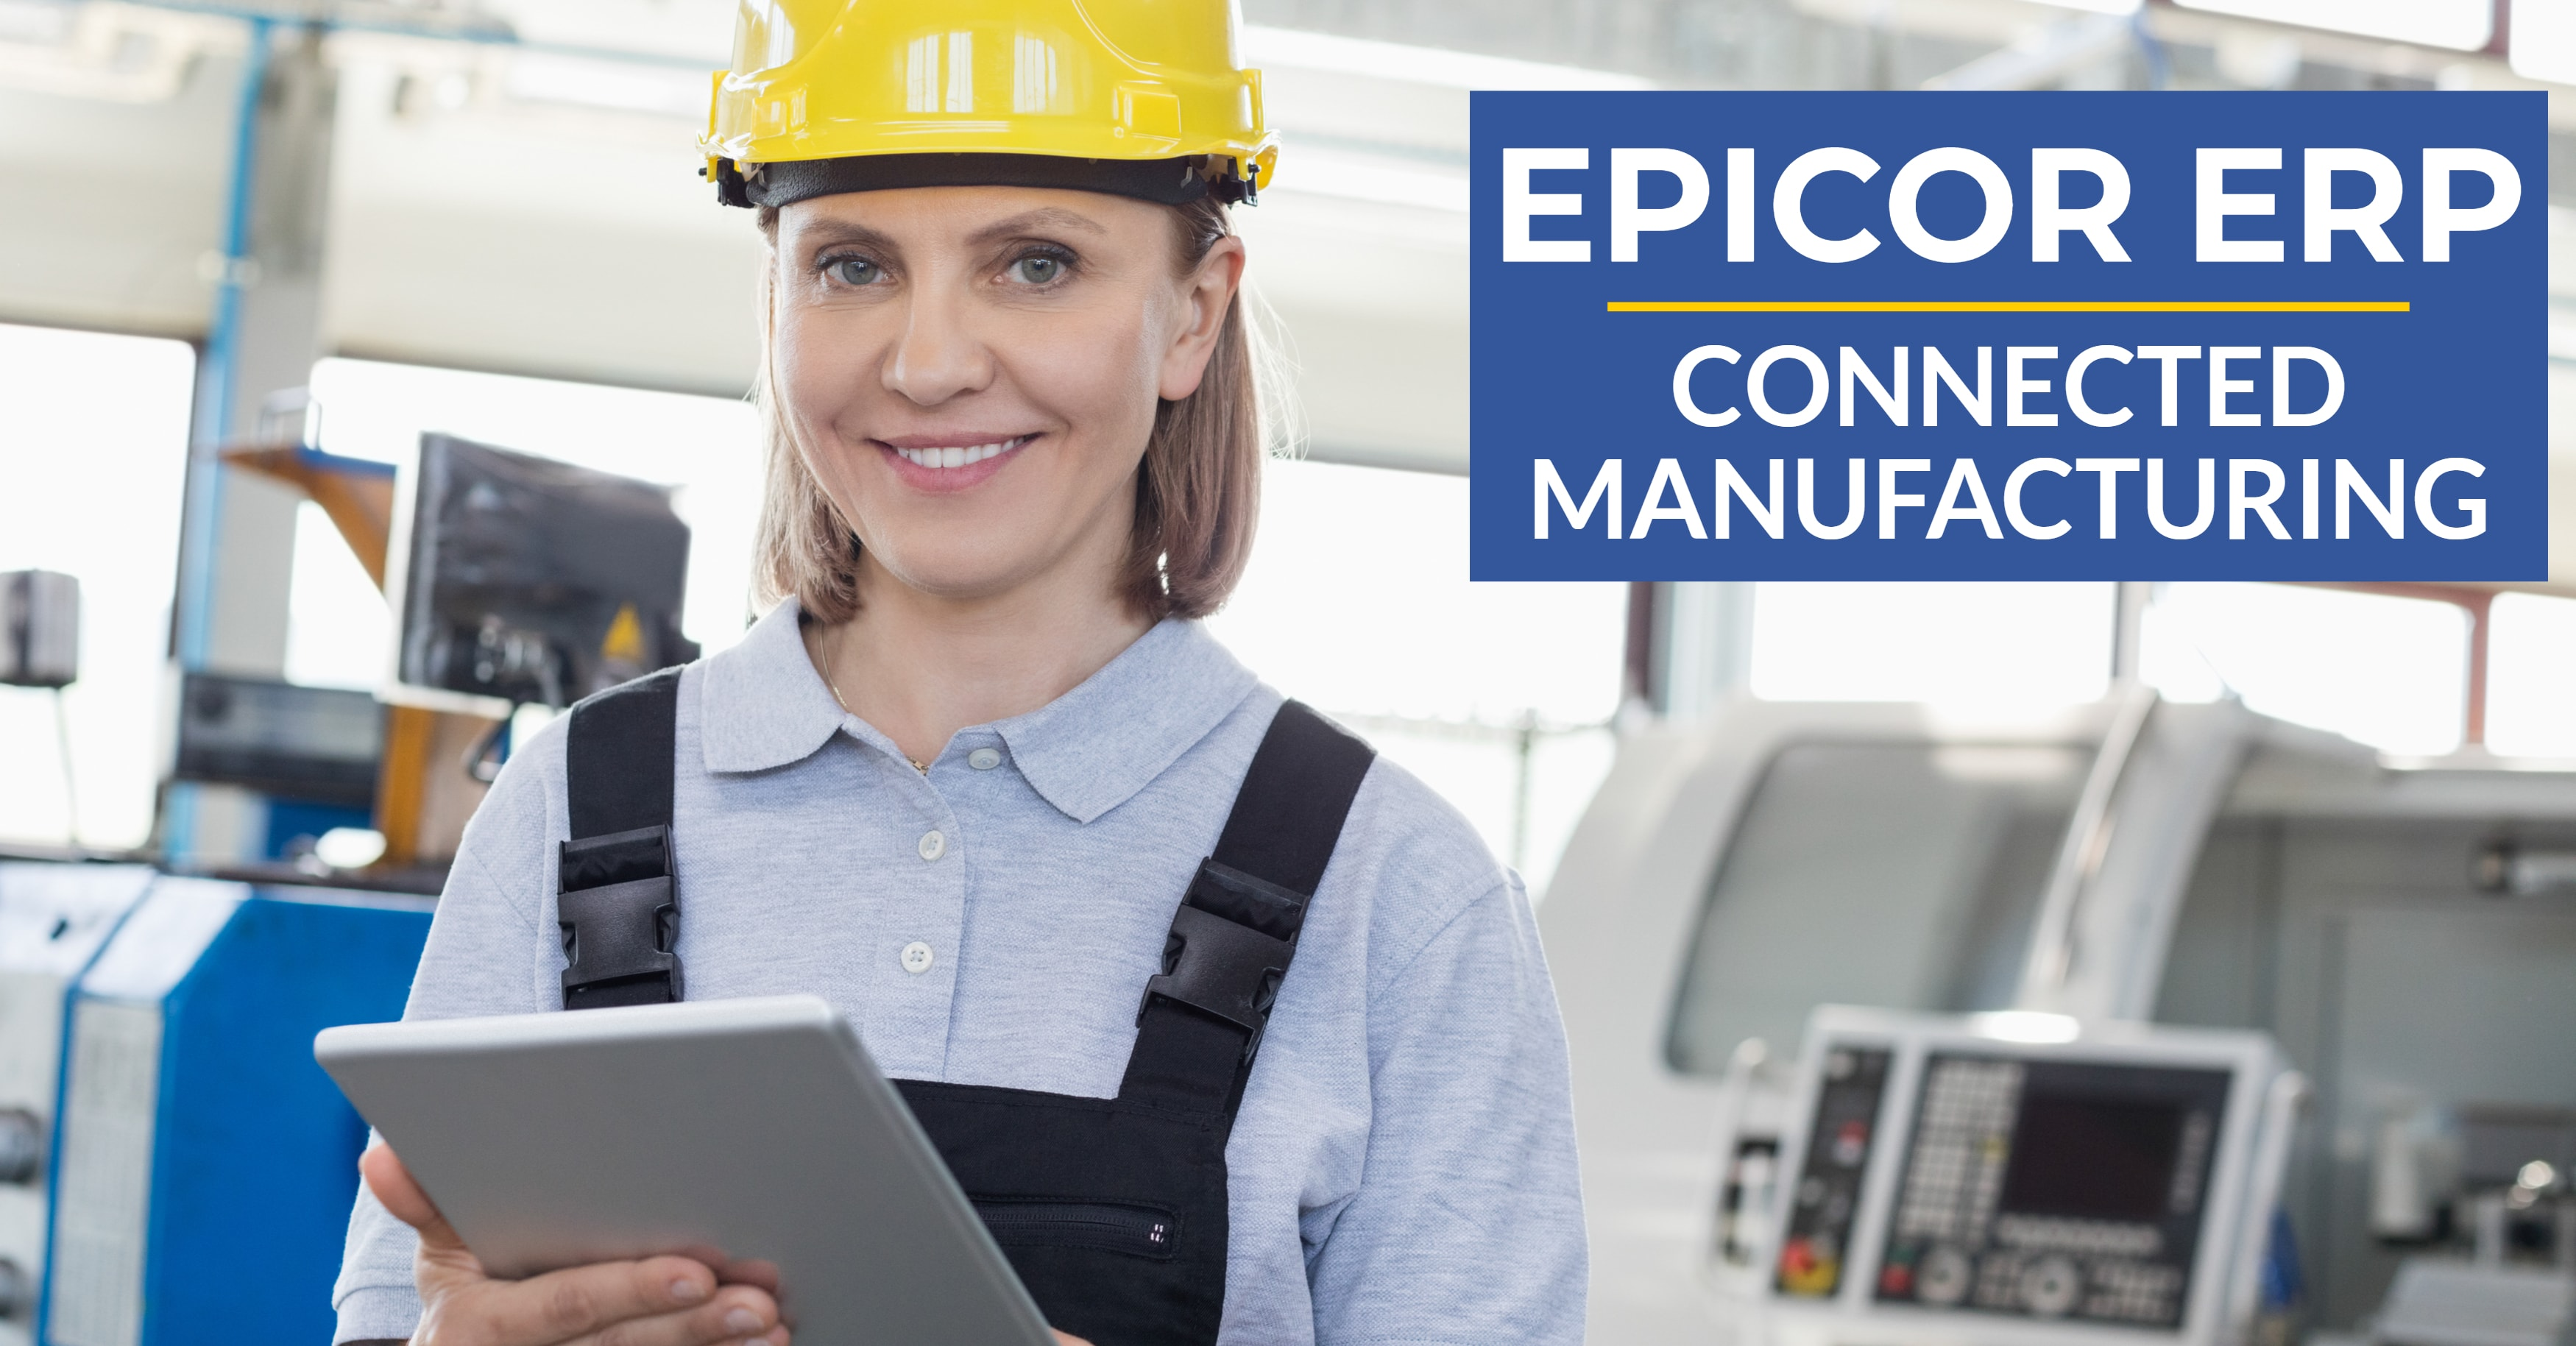 Epicor ERP Connected Manufacturing